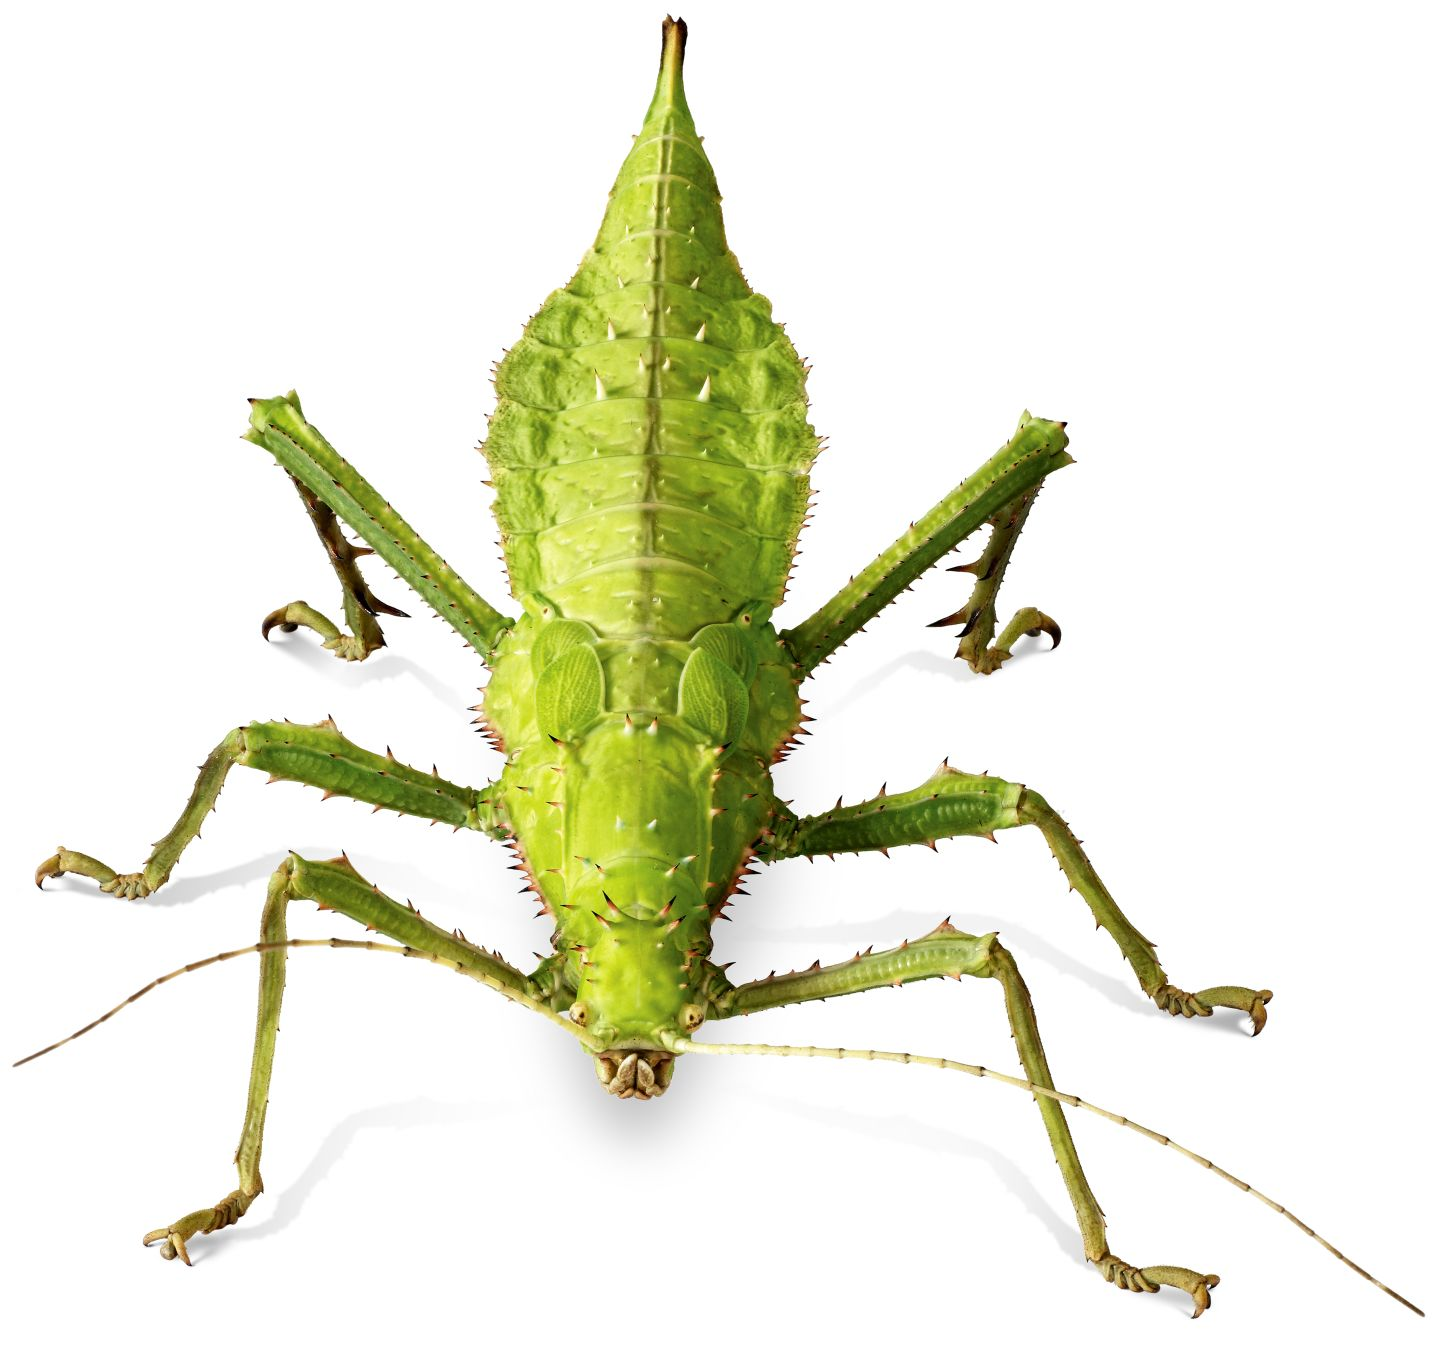 What Insects With 6 Legs Keyword Data